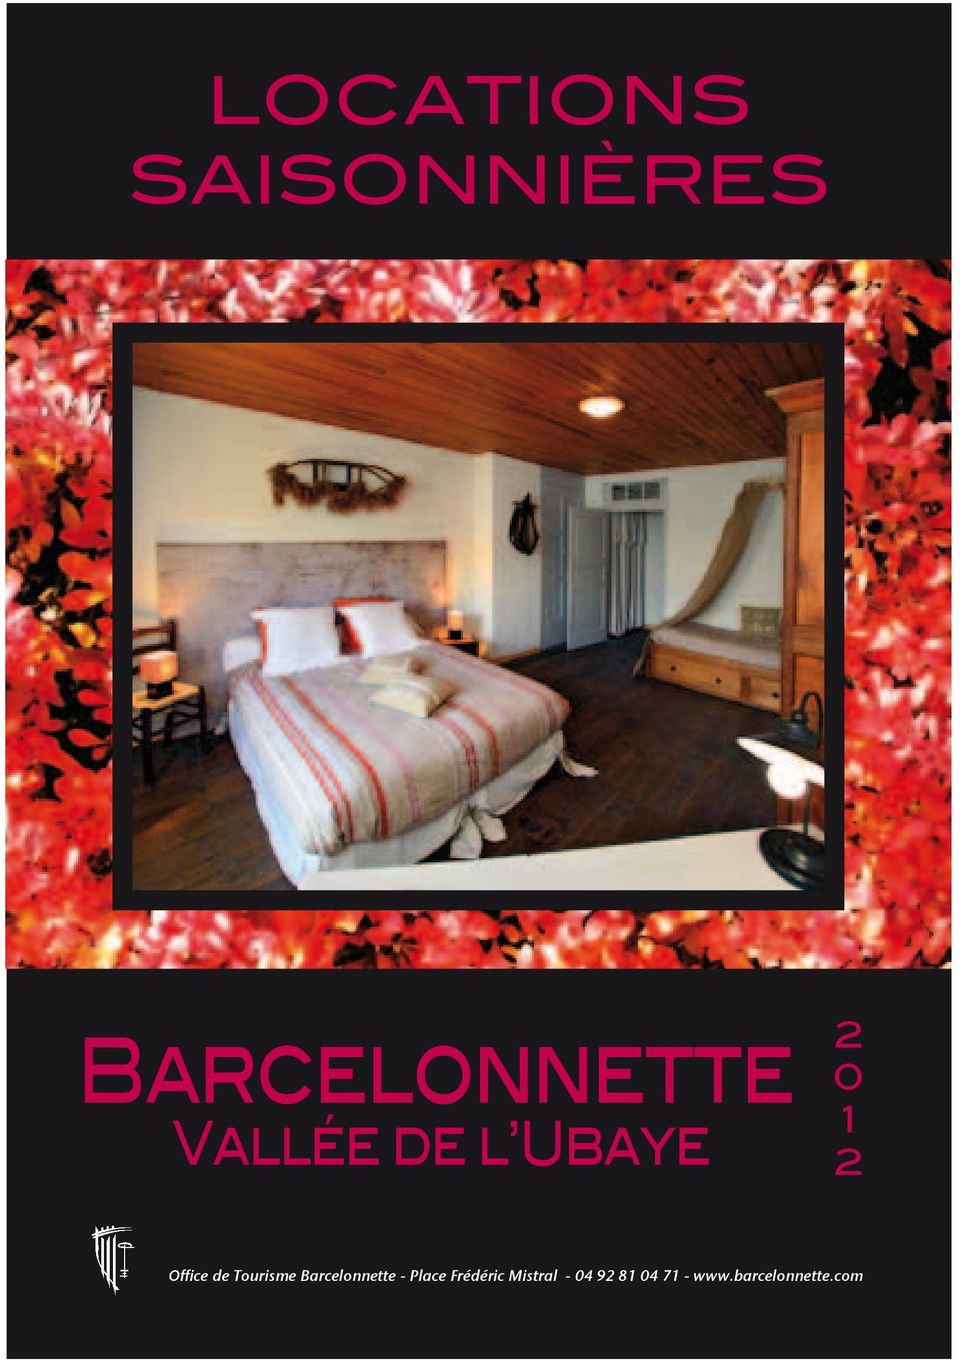 Barcelonnette locations saisonni res vall e de l ubaye pdf - Barcelonnette office tourisme ...